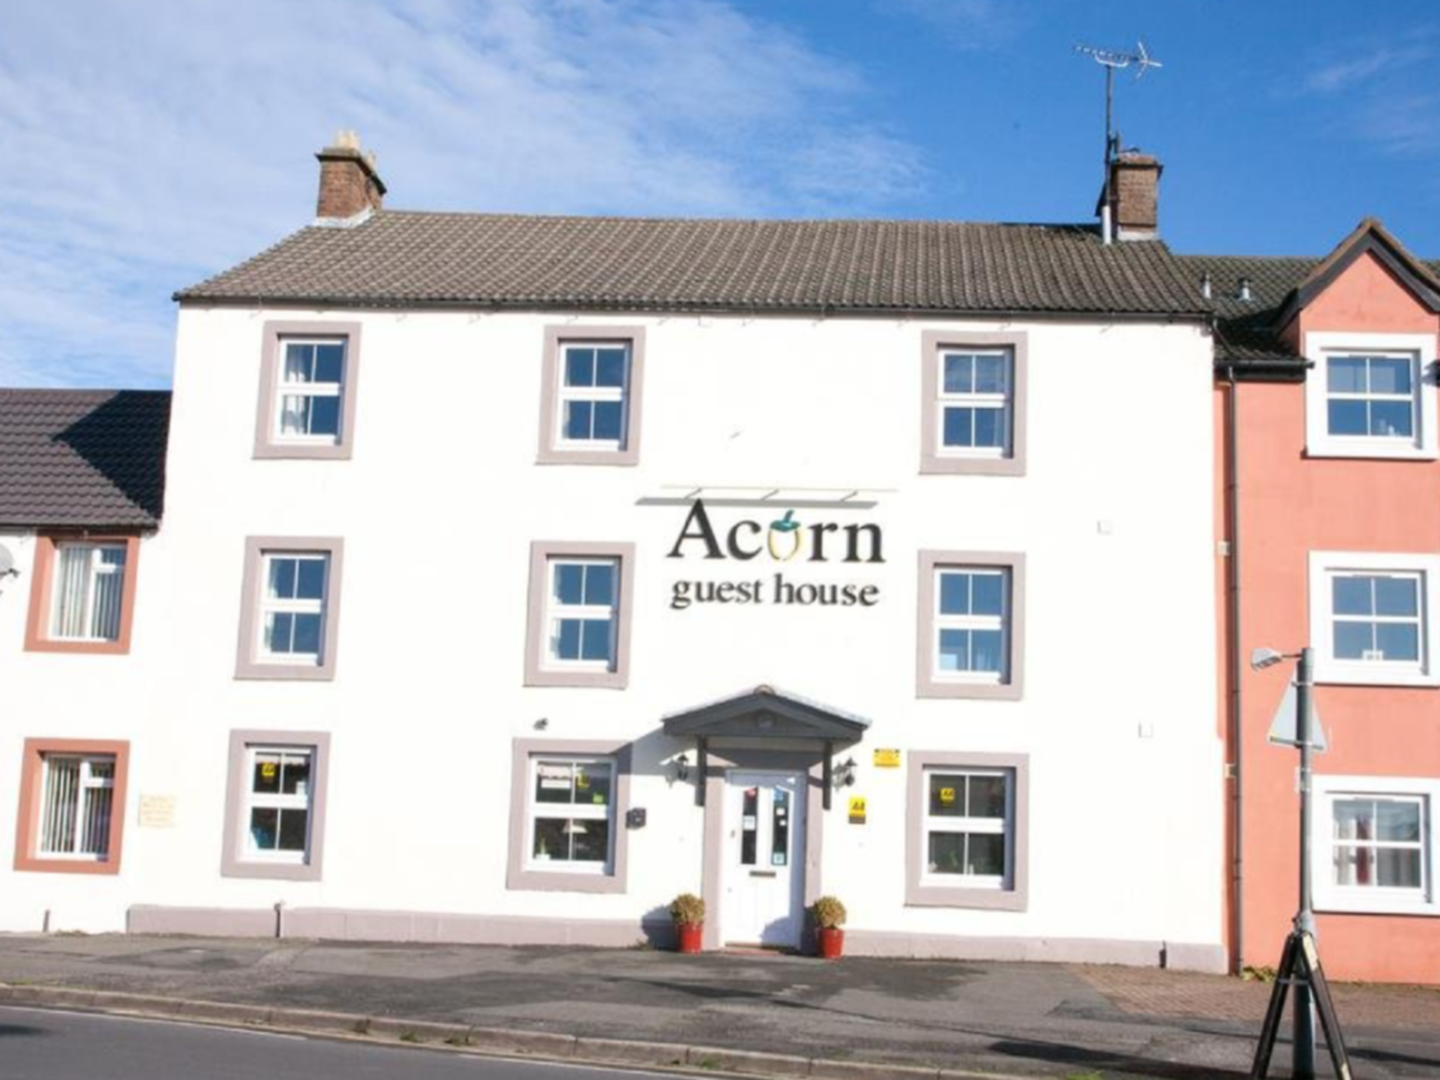 A house that is parked on the side of a building at Acorn Guest House.